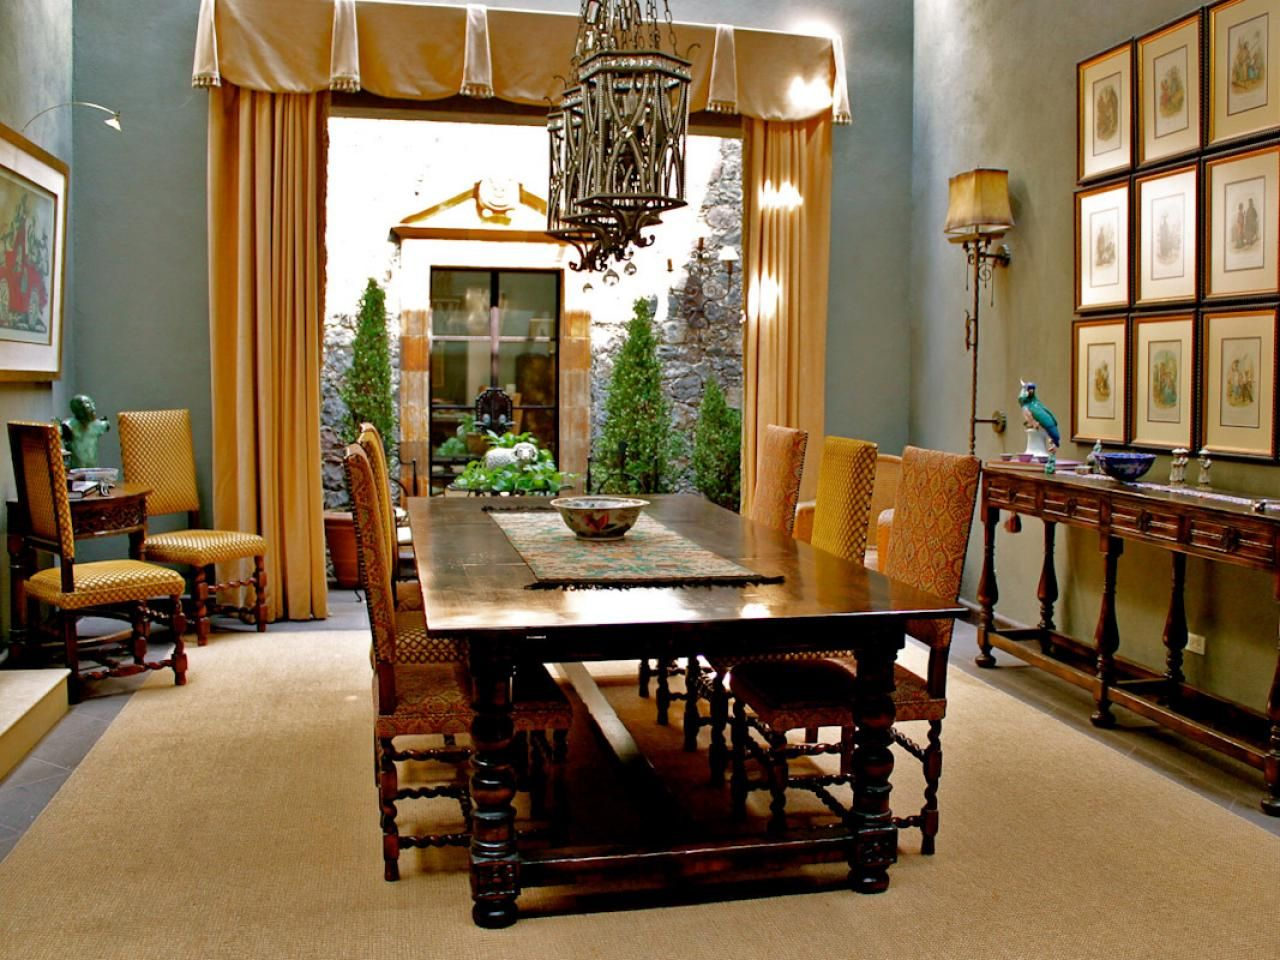 The Spanishstyle Handcarved Furniture Complements The Honey Interesting Spanish Dining Room Table Inspiration